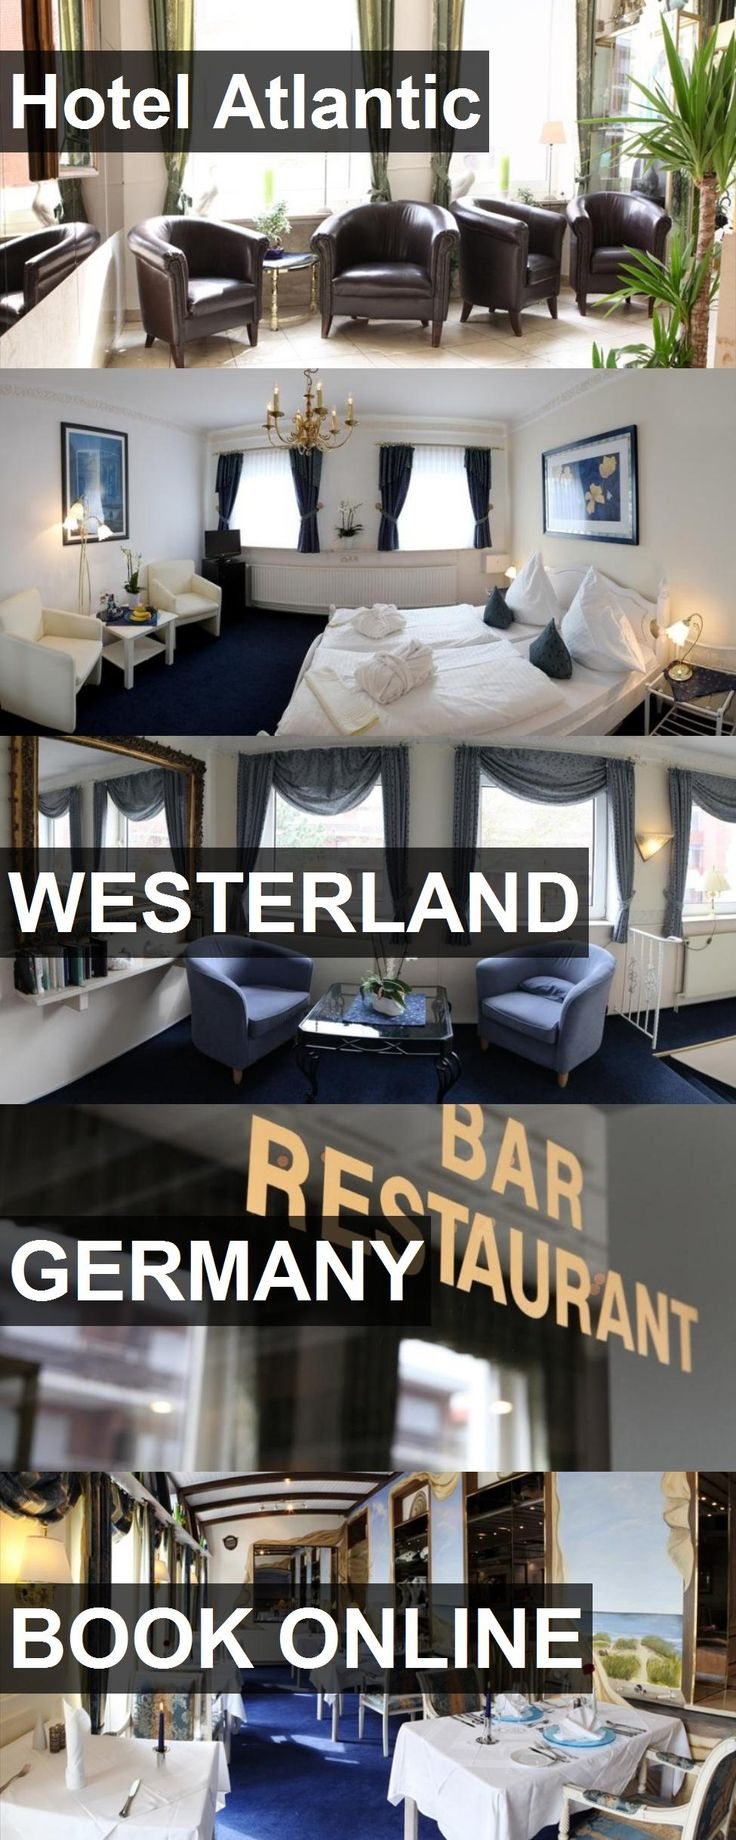 Hotel Atlantic in Westerland, Germany. For more information, photos, reviews and best prices please follow the link. #Germany #Westerland #travel #vacation #hotel